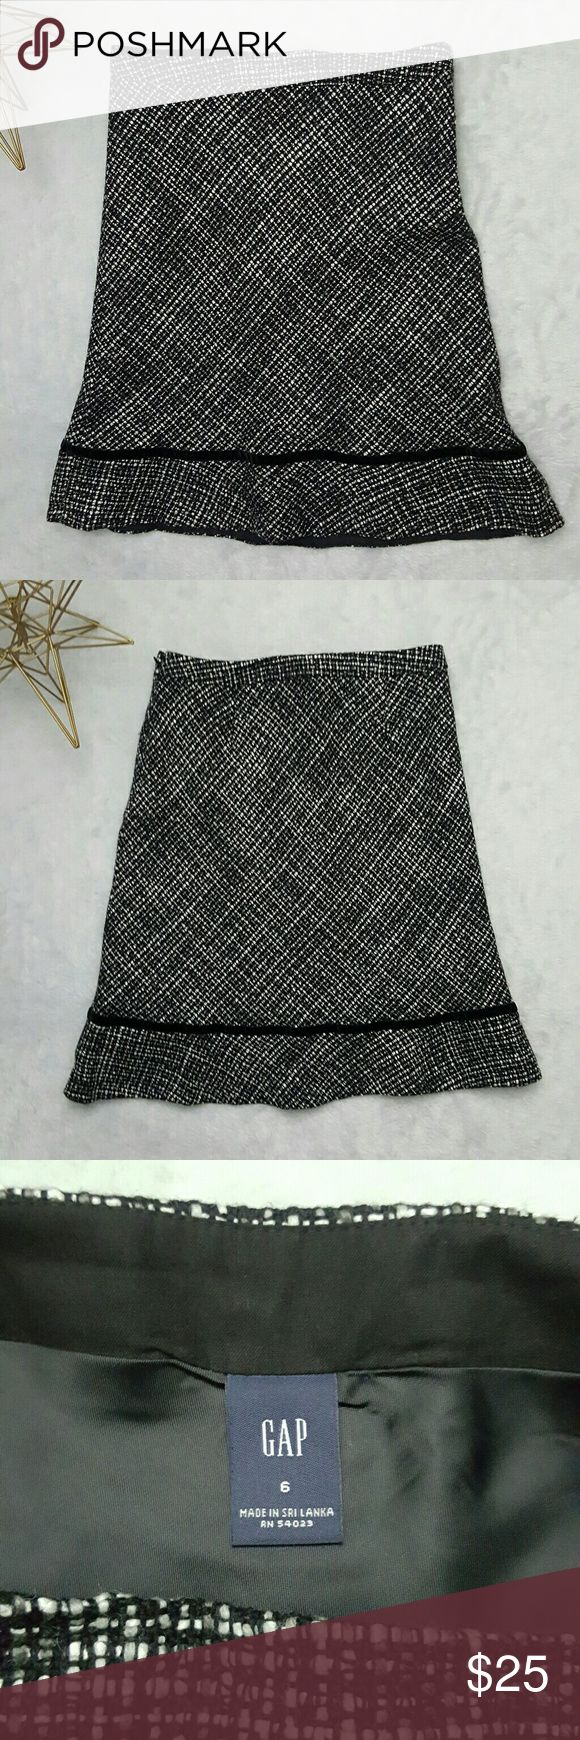 Gap Tweed  Trumpet Skirt Size 6 Gap trumpet skirt in tweed material and velvet trip at bottom. Size: 6 Color: black and white   Gently used. Great condition. GAP Skirts